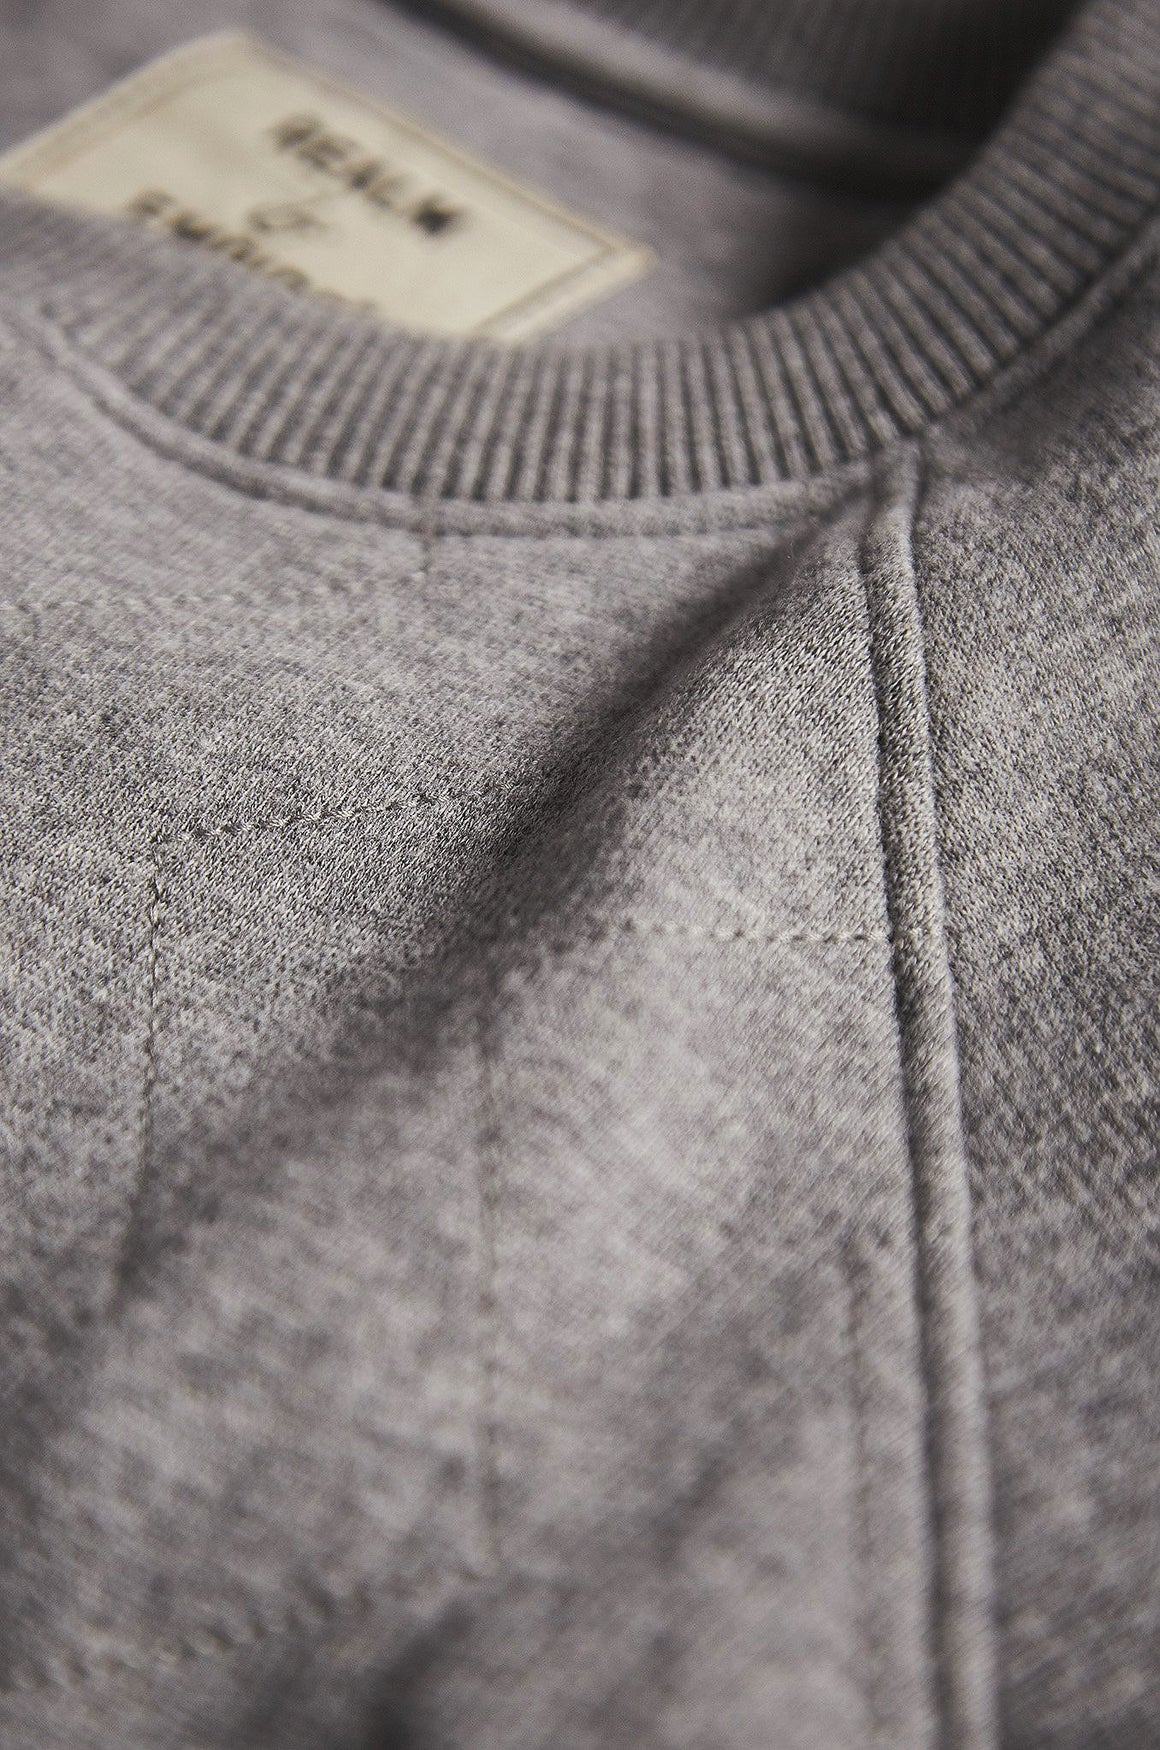 Zigzag Sweatshirt - Military PT Sportswear | Realm & Empire - Front